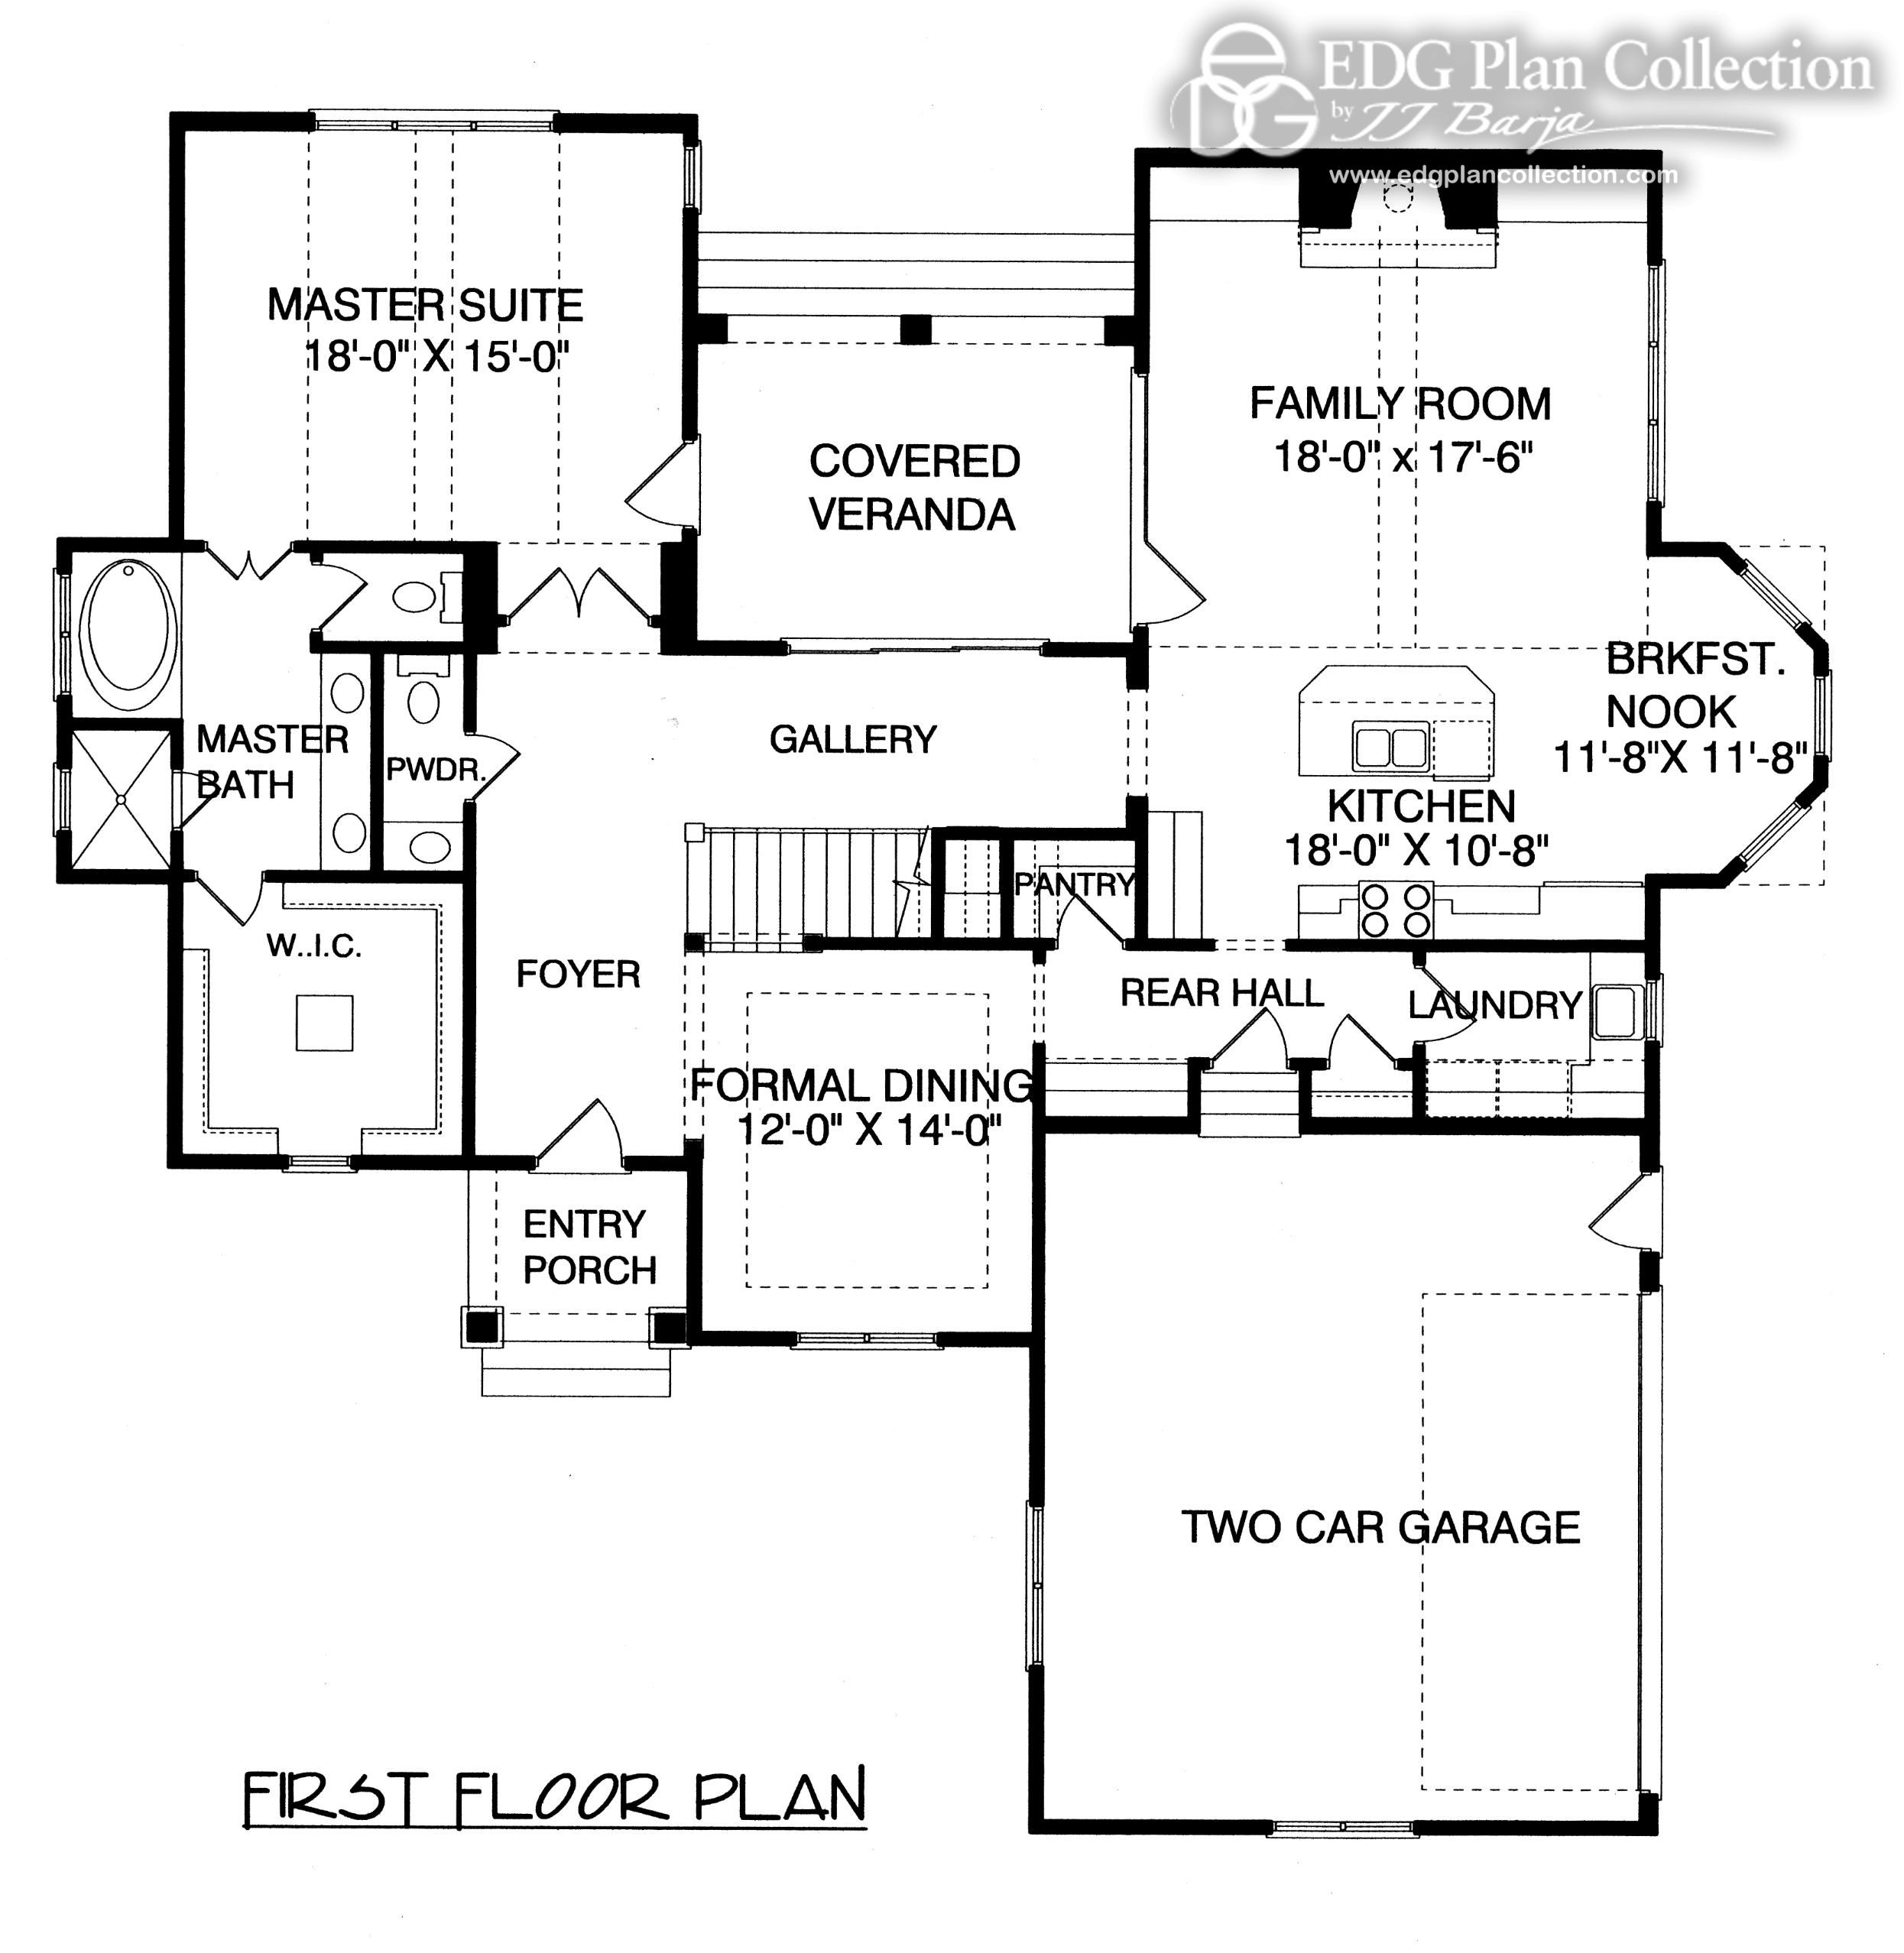 bcd8c4703cd3545a9c46fab1fa3c0268 Top Result 52 Best Of Craftsman Style Home Plans Photography 2017 Hdj5